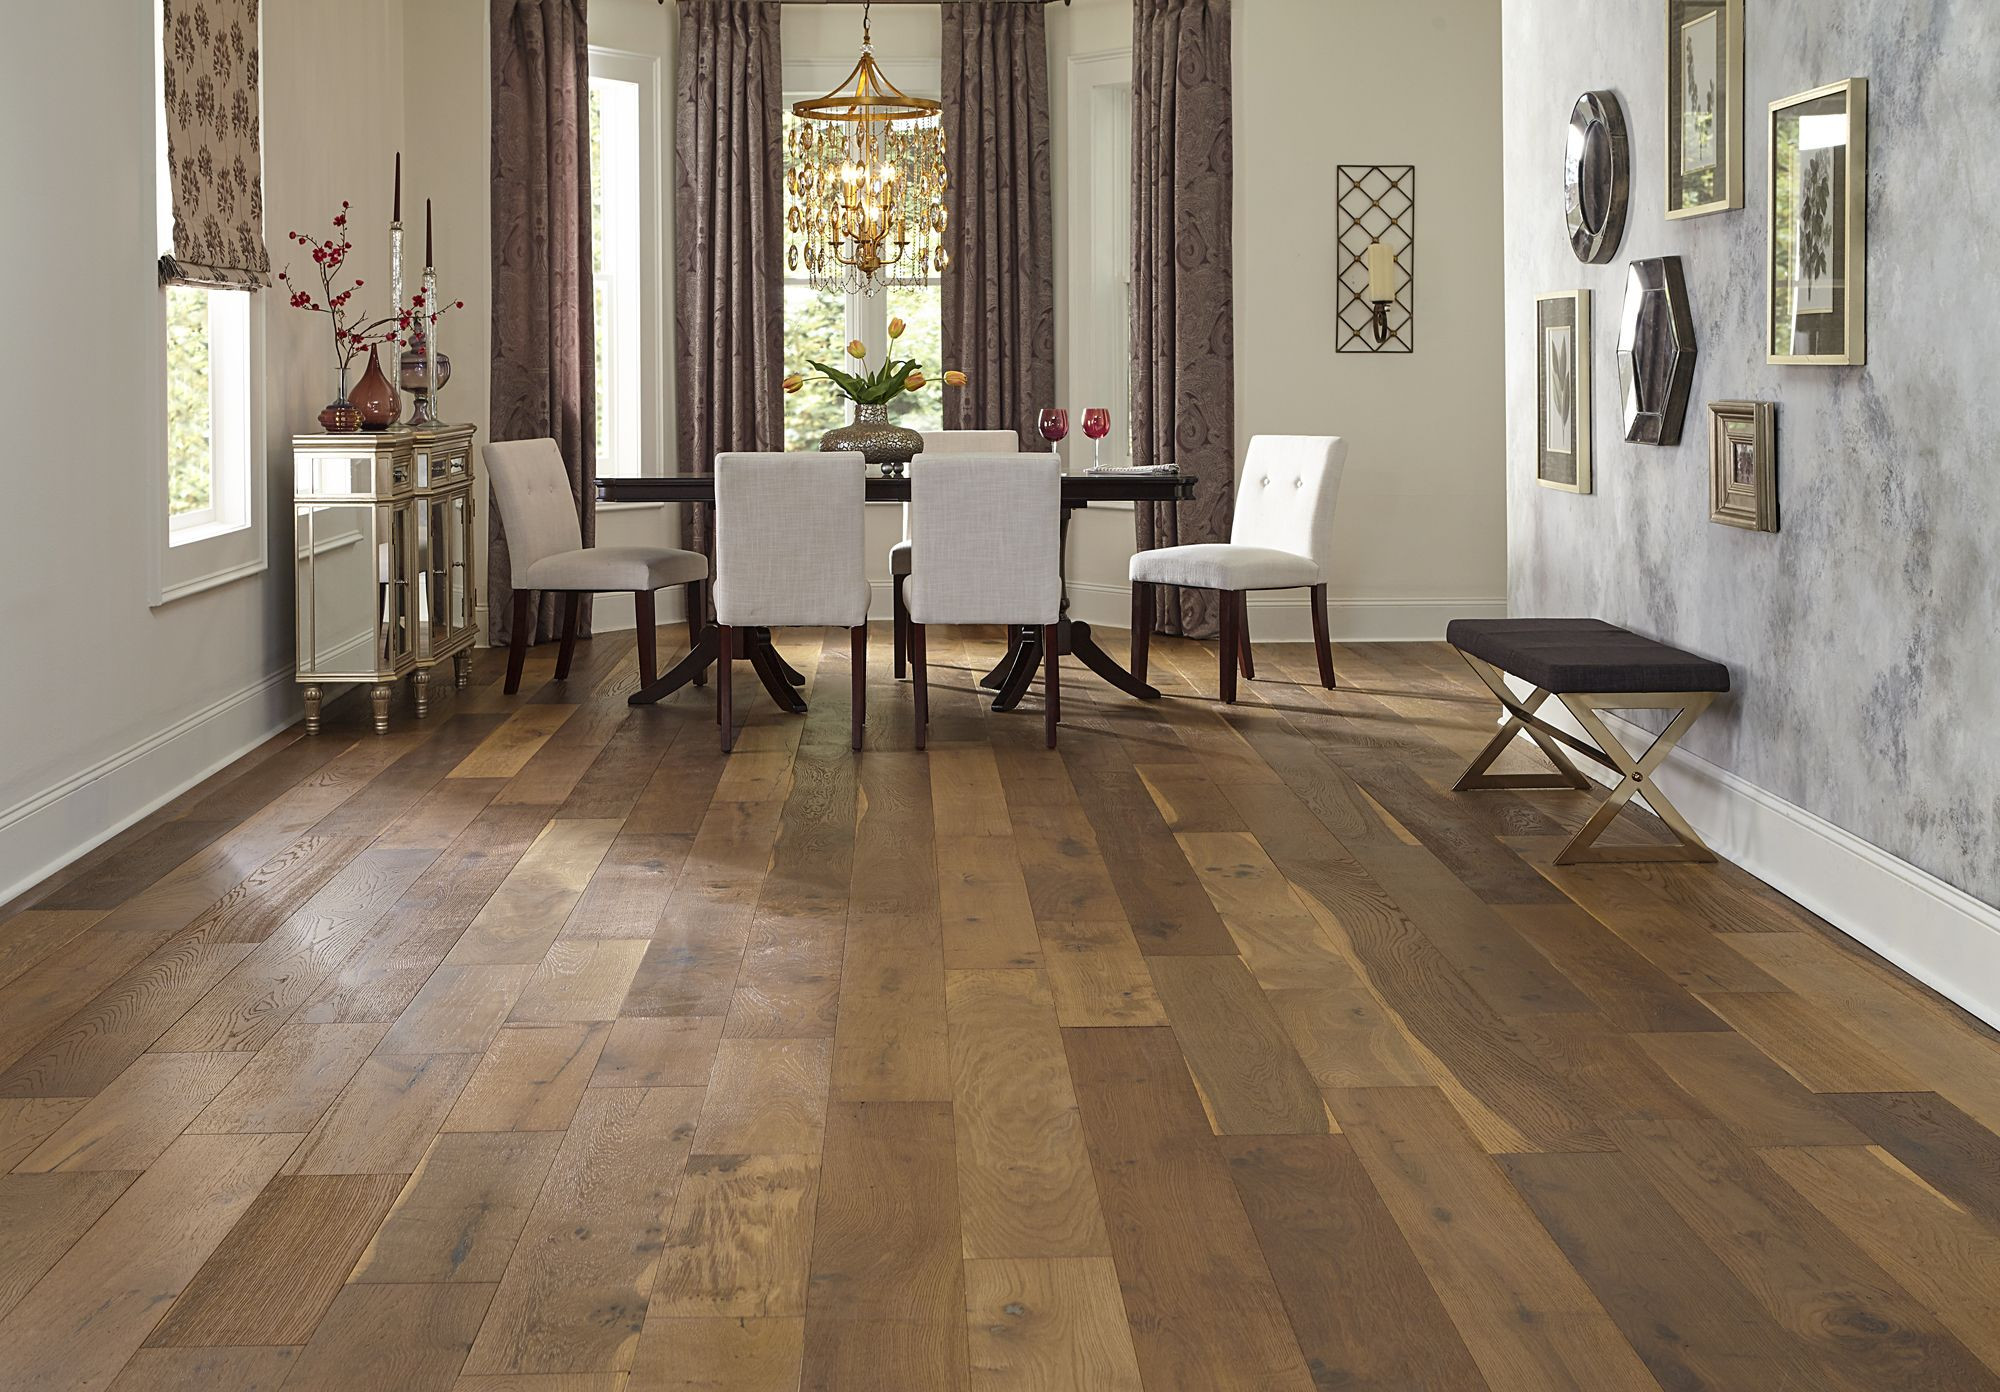 installing engineered hardwood flooring in basement of 7 1 2 wide planks and a rustic look bellawood willow manor oak has within 7 1 2 wide planks and a rustic look bellawood willow manor oak has a storied old world appearance